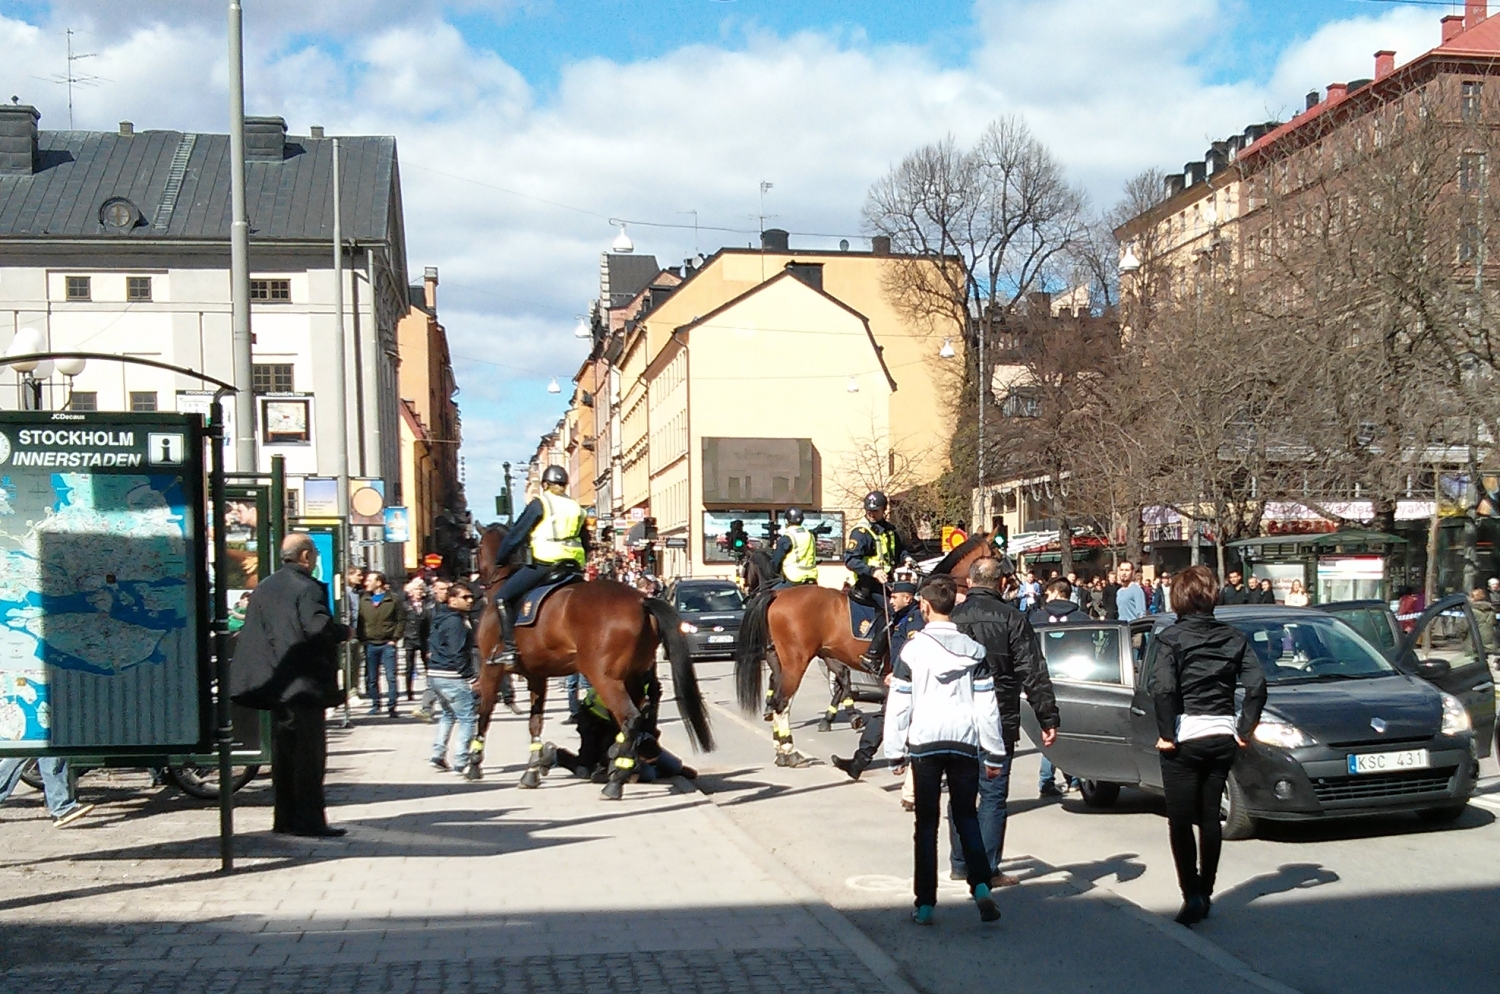 Protest at Medborgarplatsen